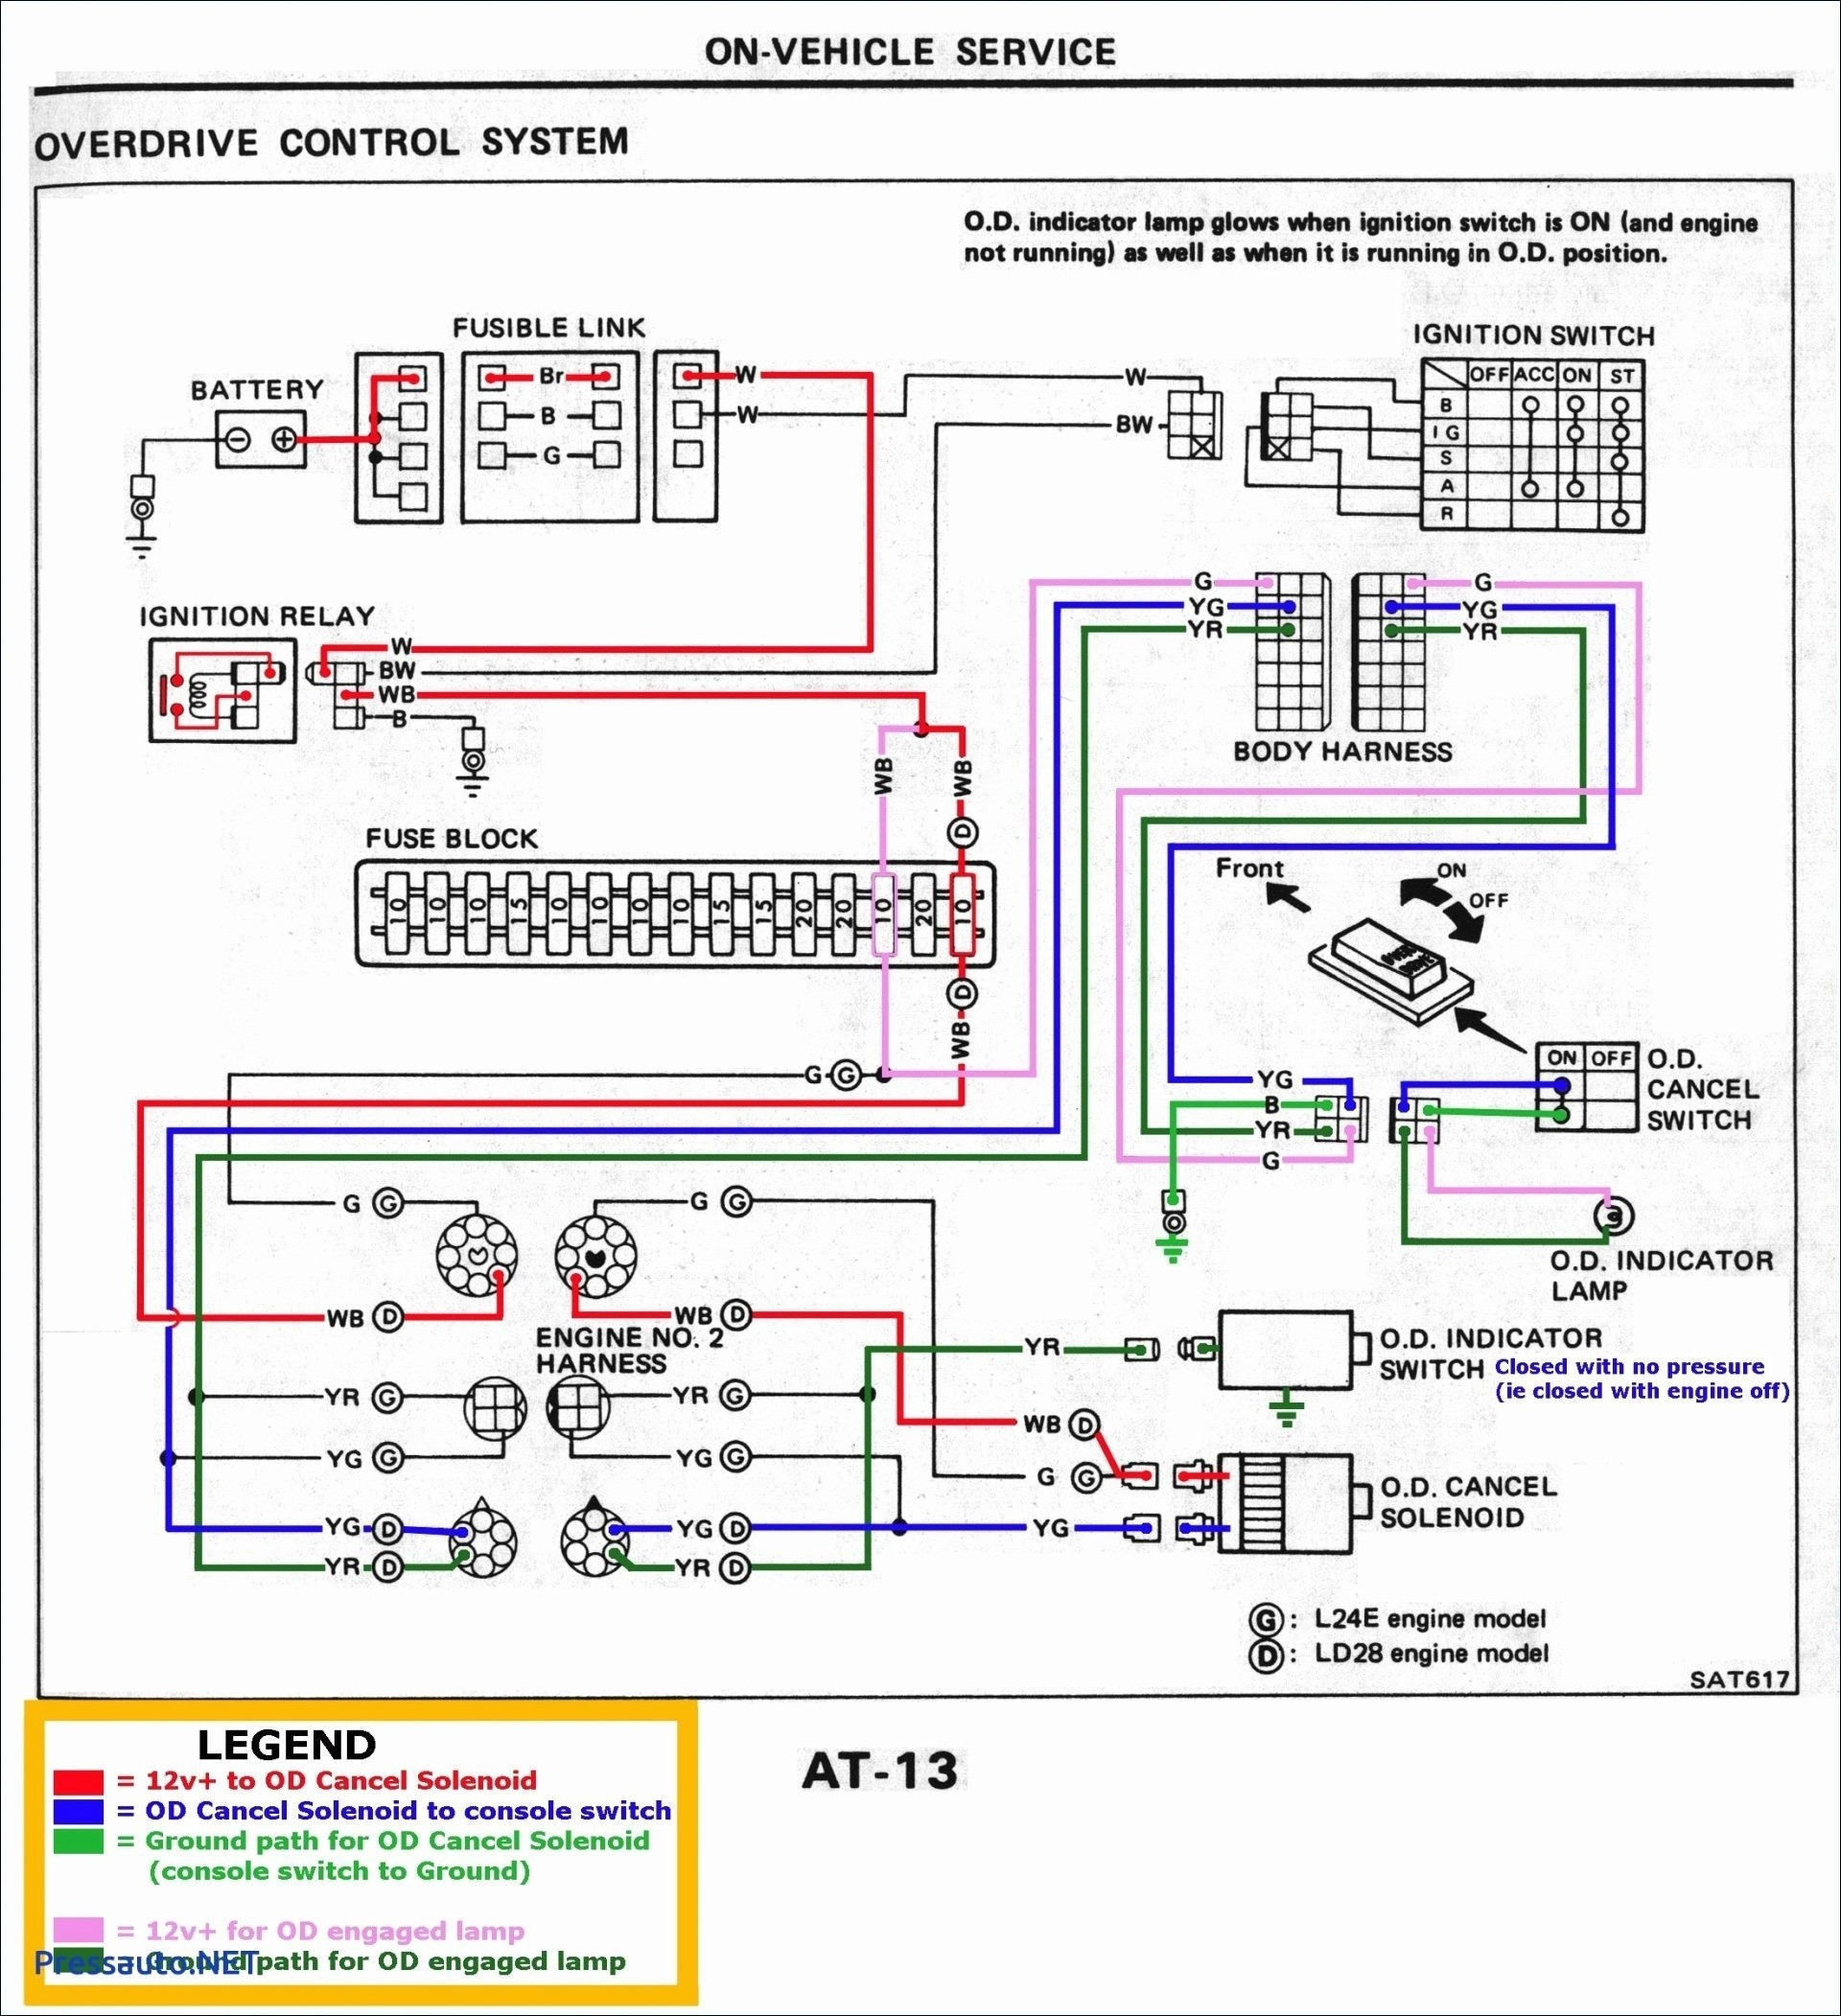 dodge ram wiring harness diagram Collection-2006 Dodge Ram 1500 Trailer Wiring Diagram Valid 2004 Dodge Ram 1500 Ignition Switch Wiring Diagram 15-h